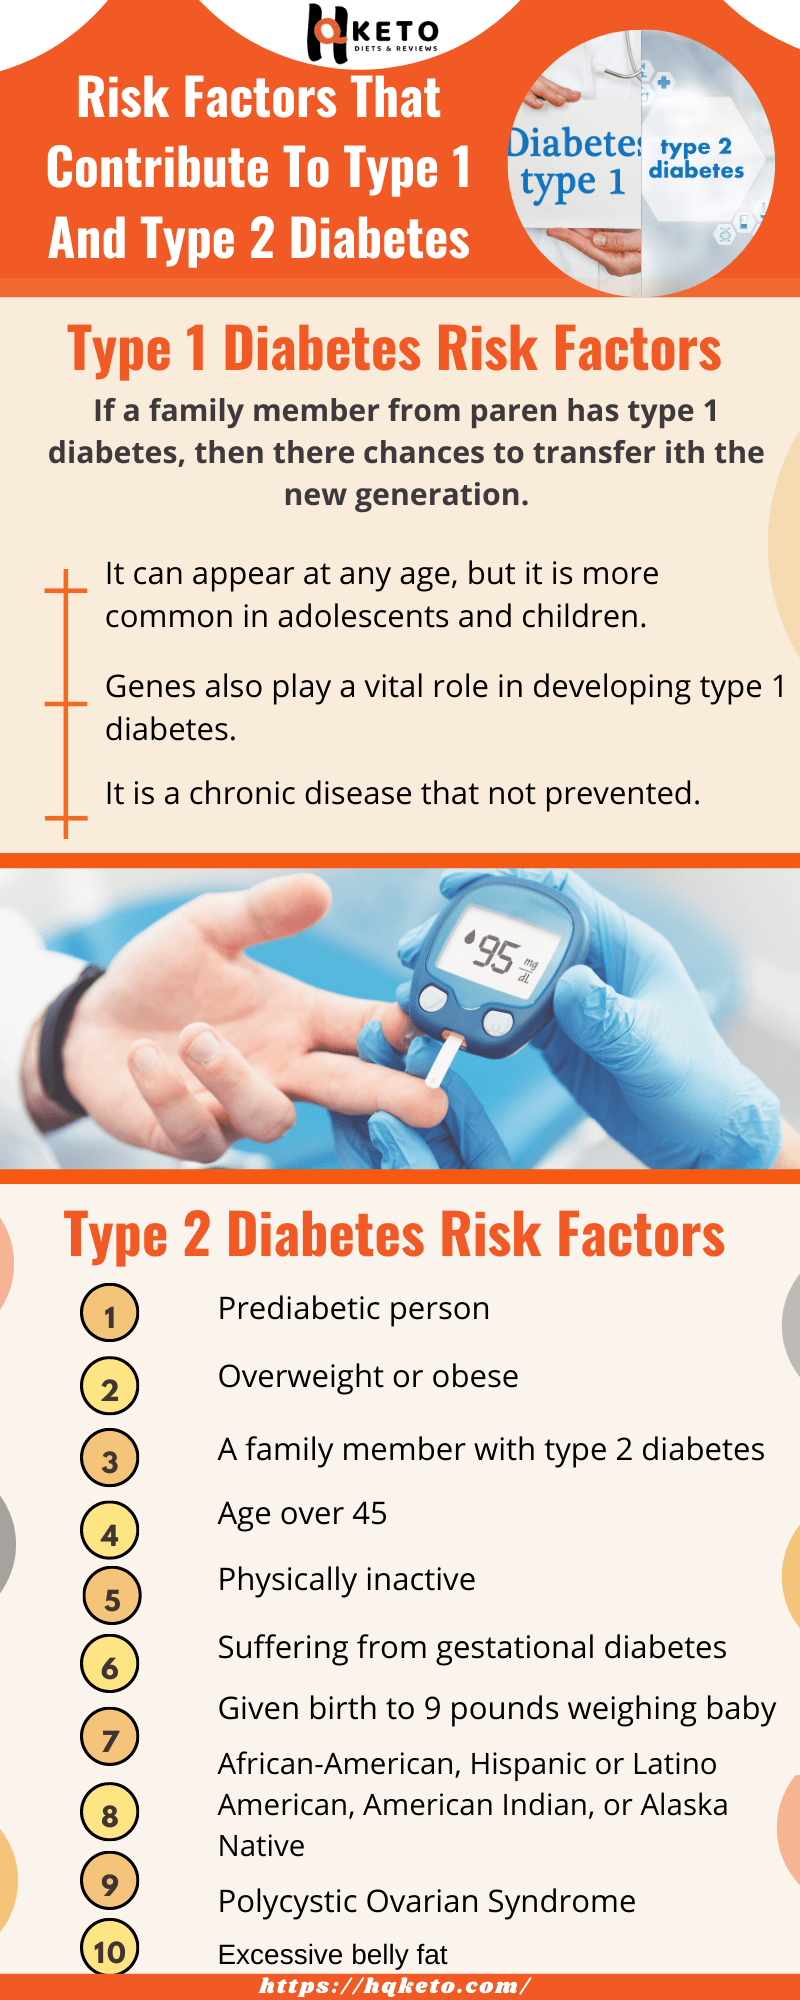 Risk Factors Type 1 And Type 2 Diabetes